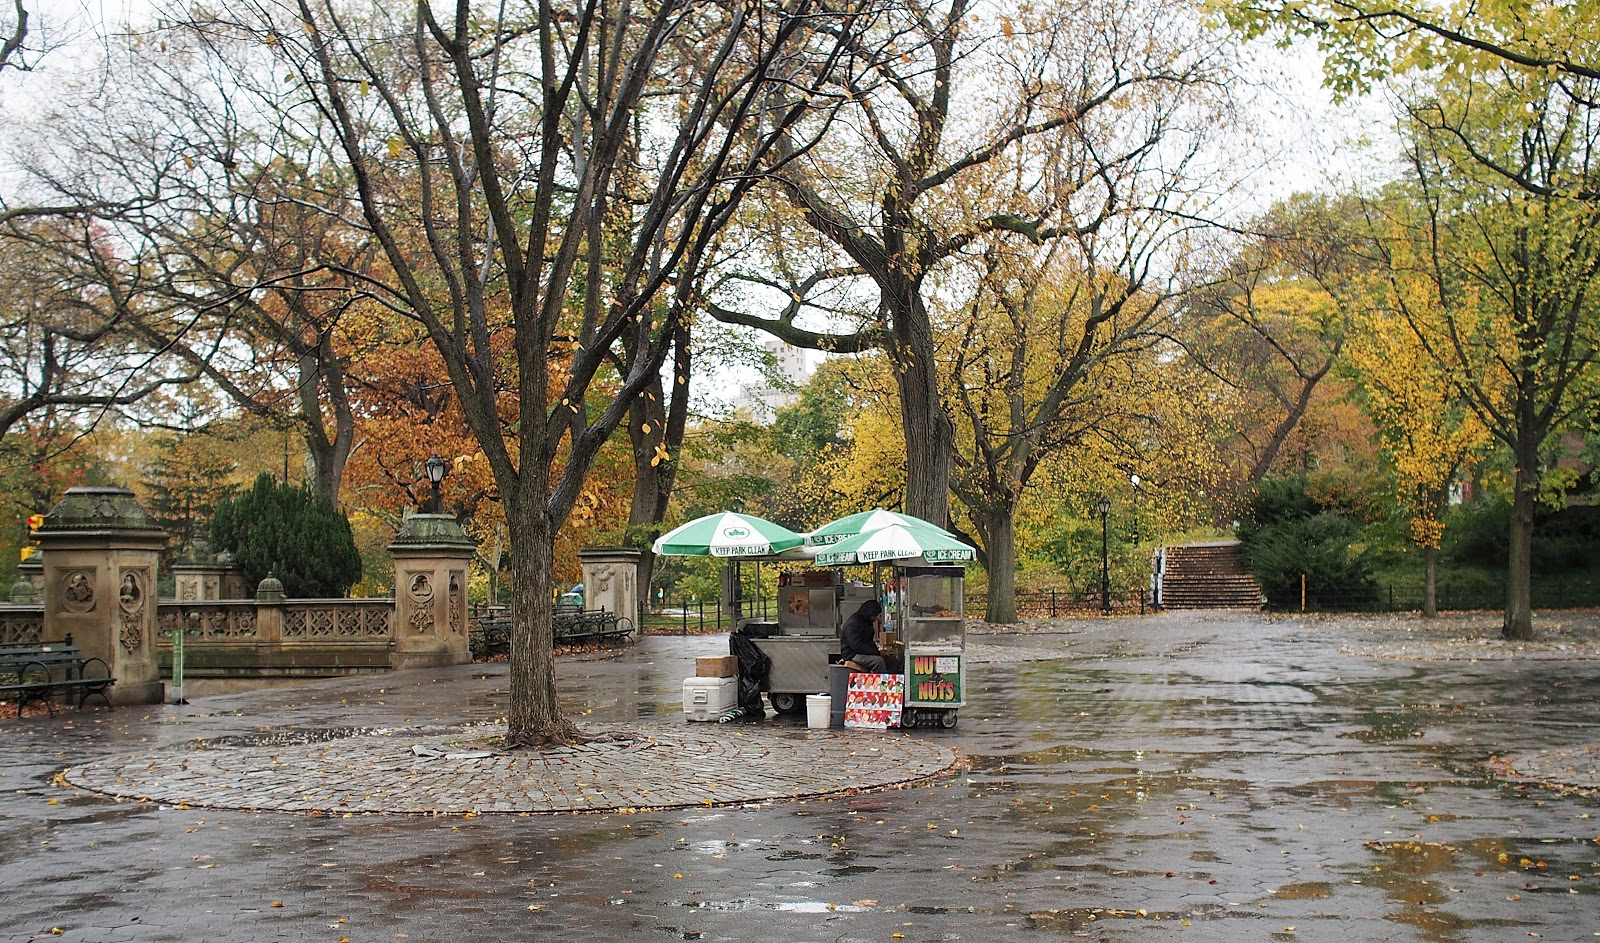 Slow Day at the Cart, #slowdayatthecart #thebandshell #centralpark #nyc #fall #fallfoliage #rainyday 2014